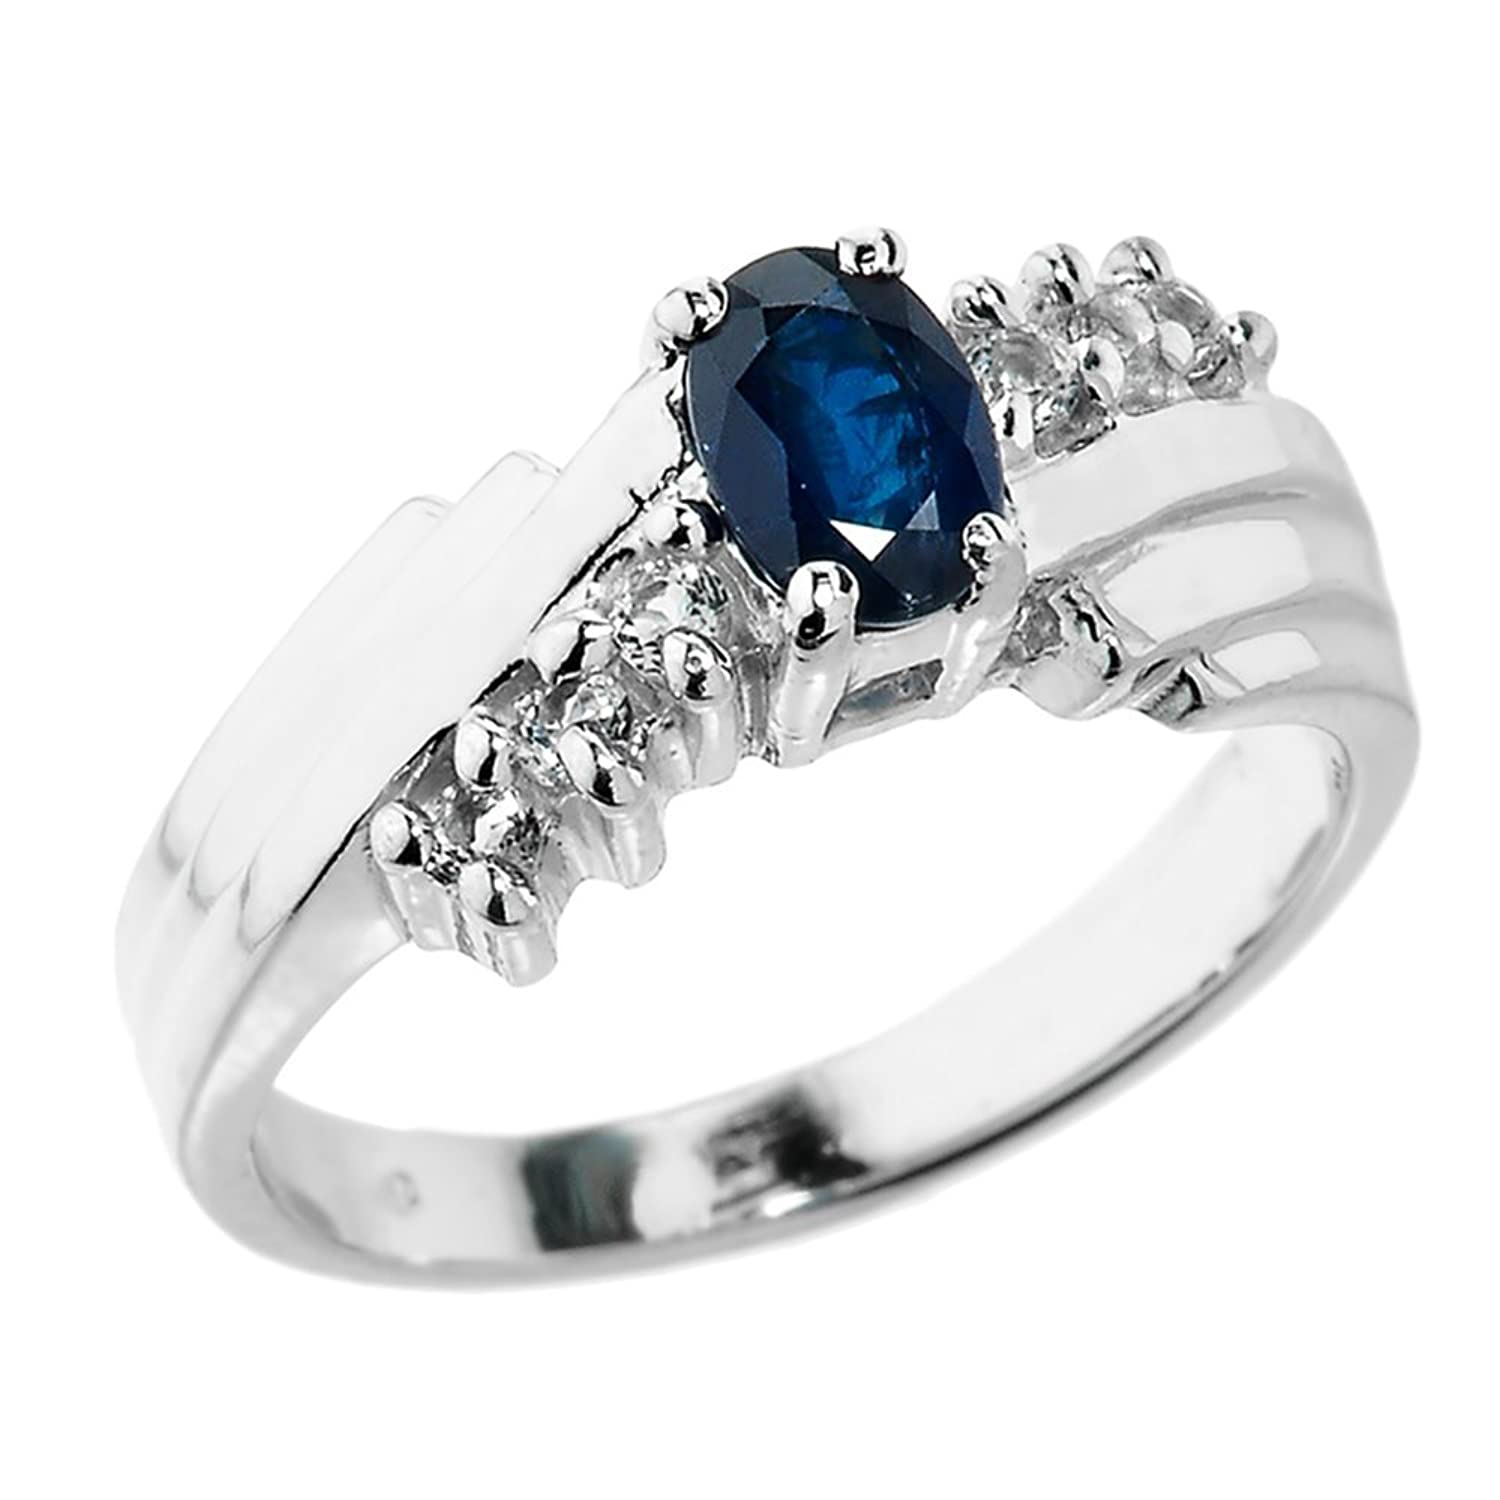 strand pin engagement at bride com shop alt rings stoneandstrand stone layered